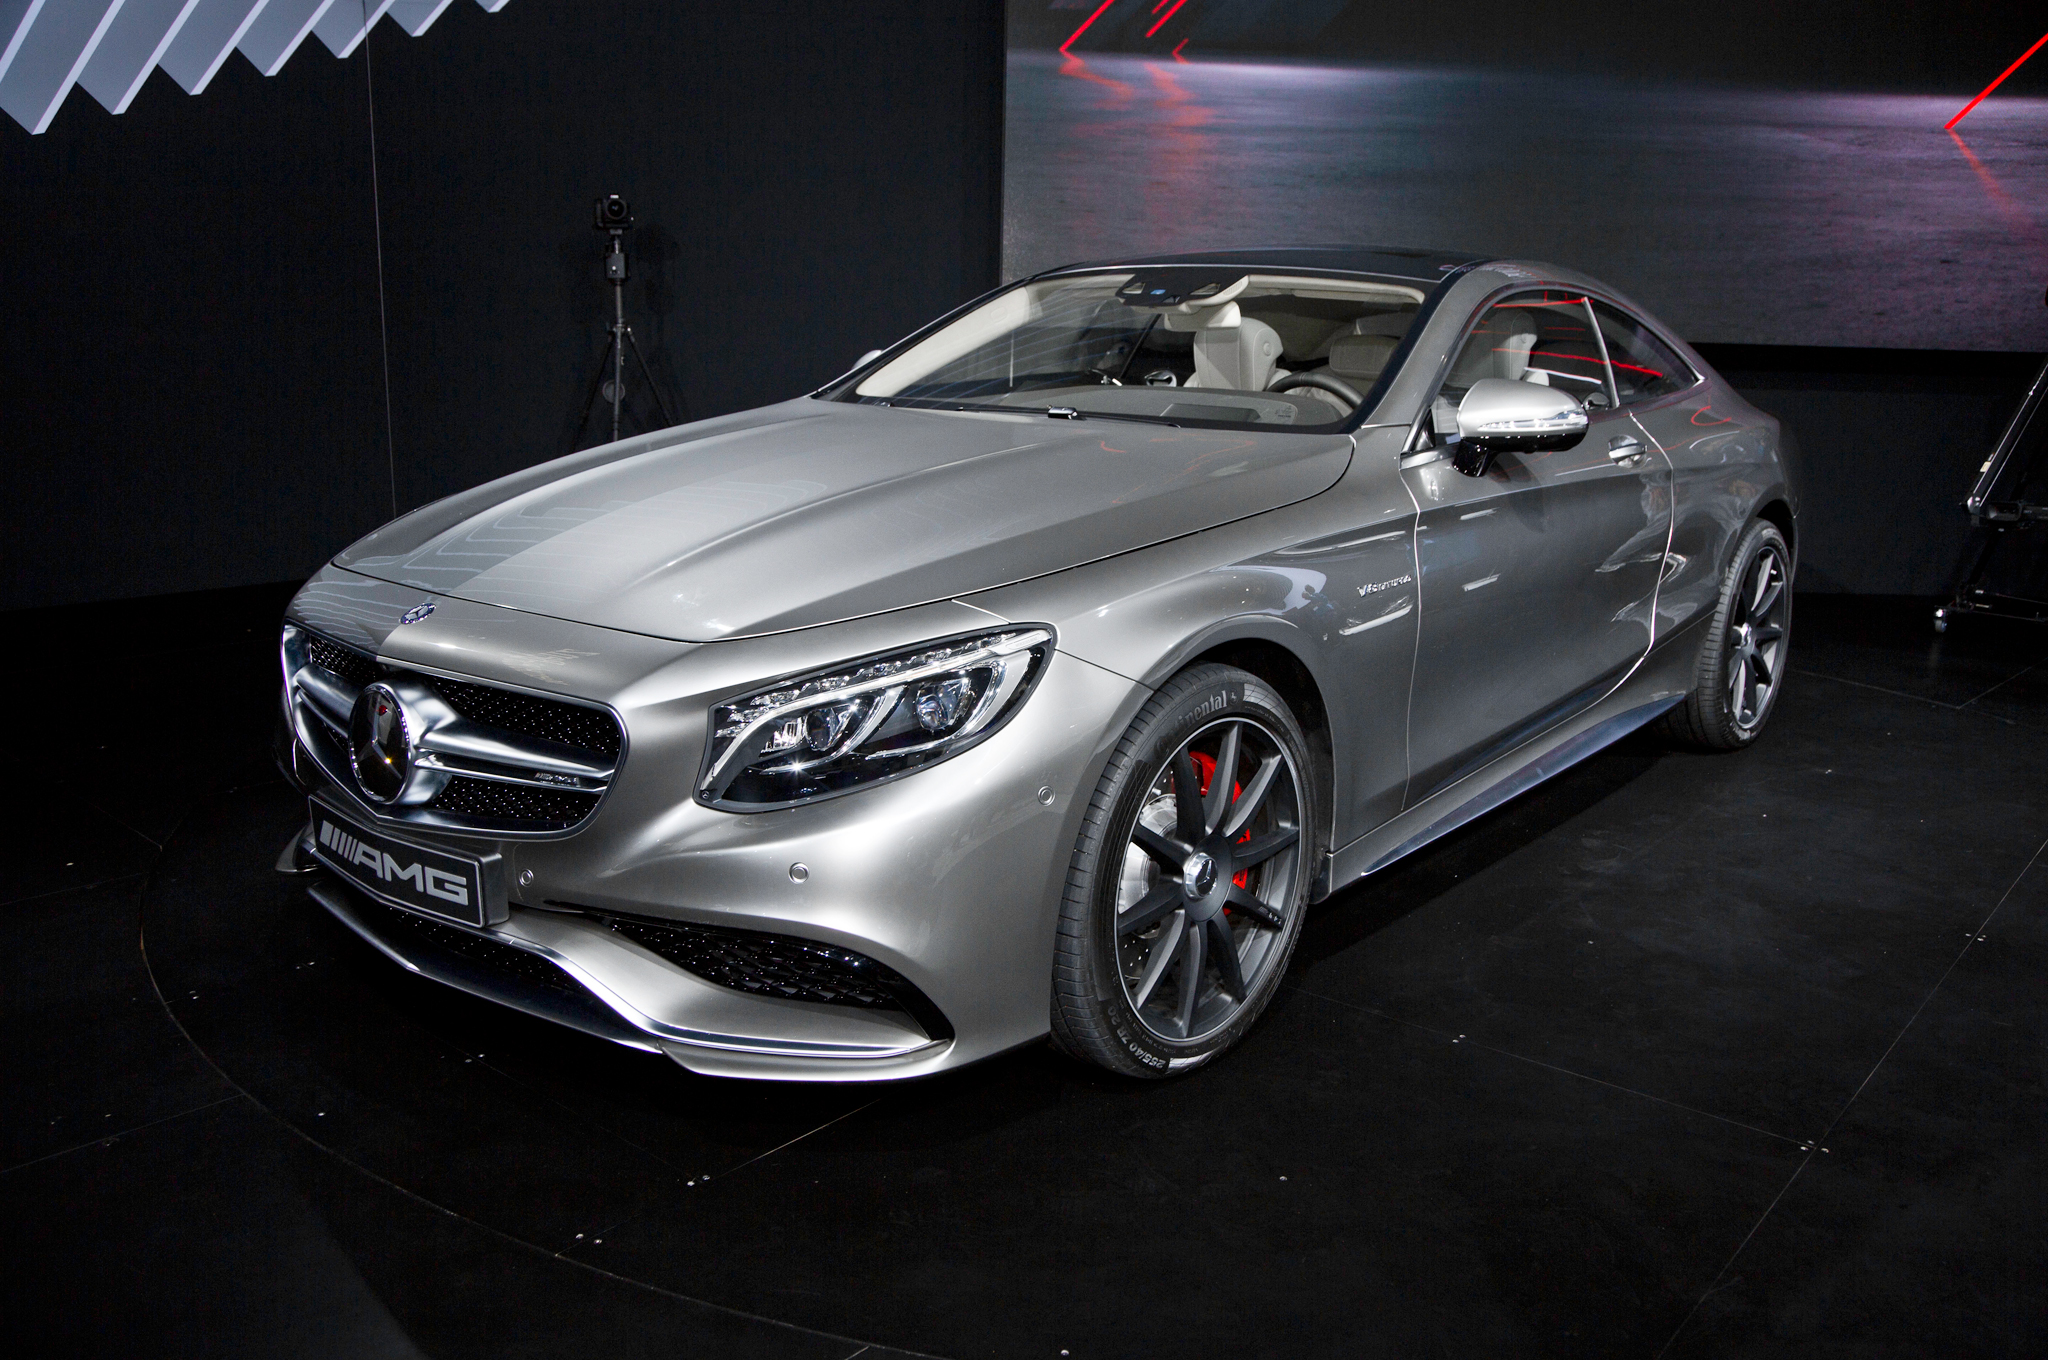 2015 Mercedes-Benz S63 AMG Coupe 4Matic Revealed Ahead of New York ...